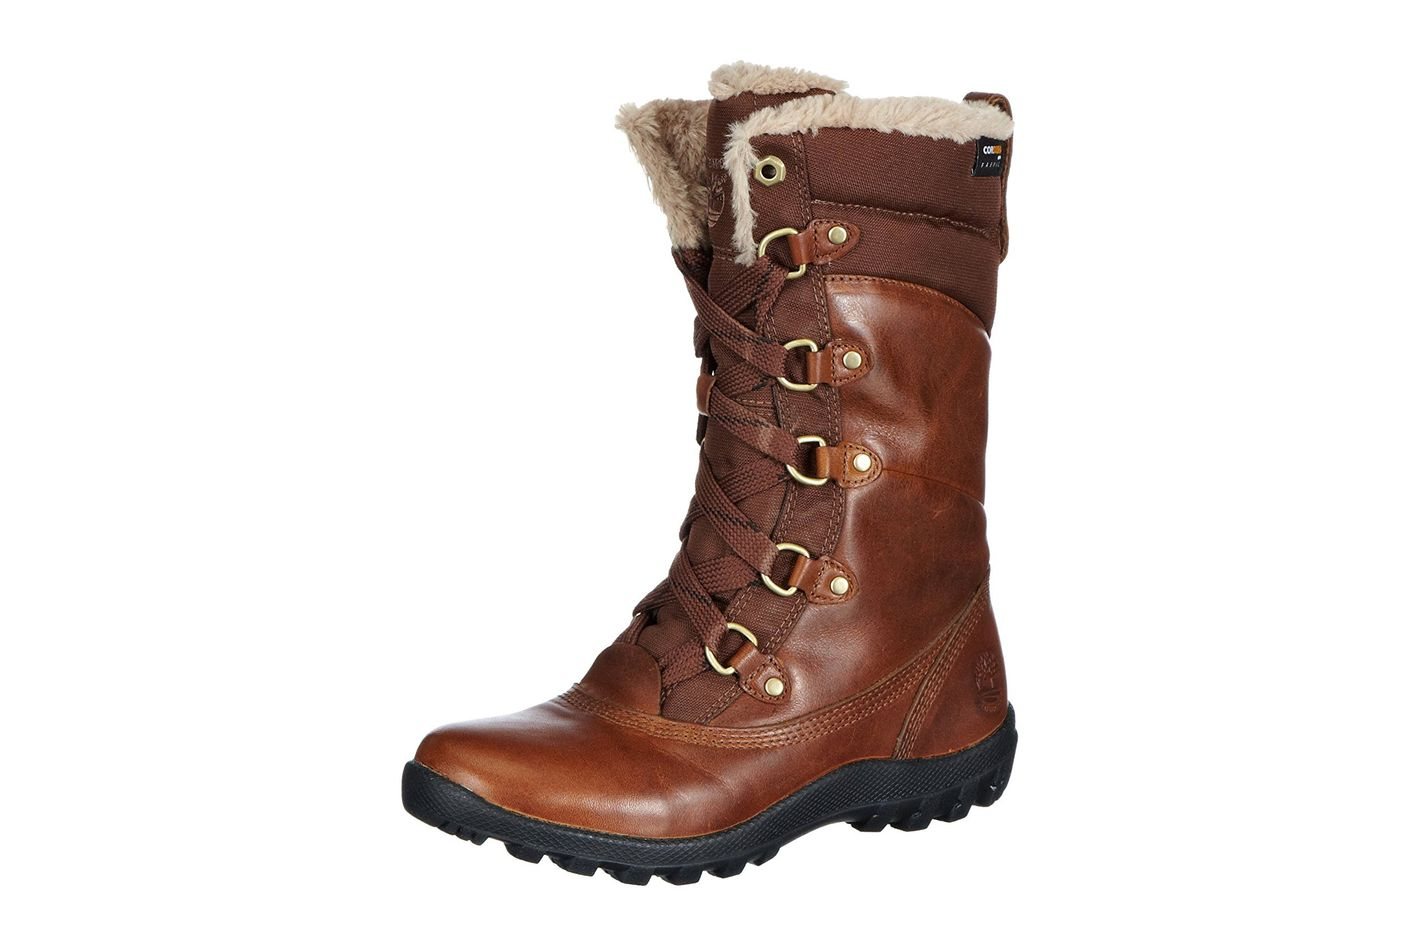 72107474e13 Timberland Women s MT Hope Mid Waterproof Boot